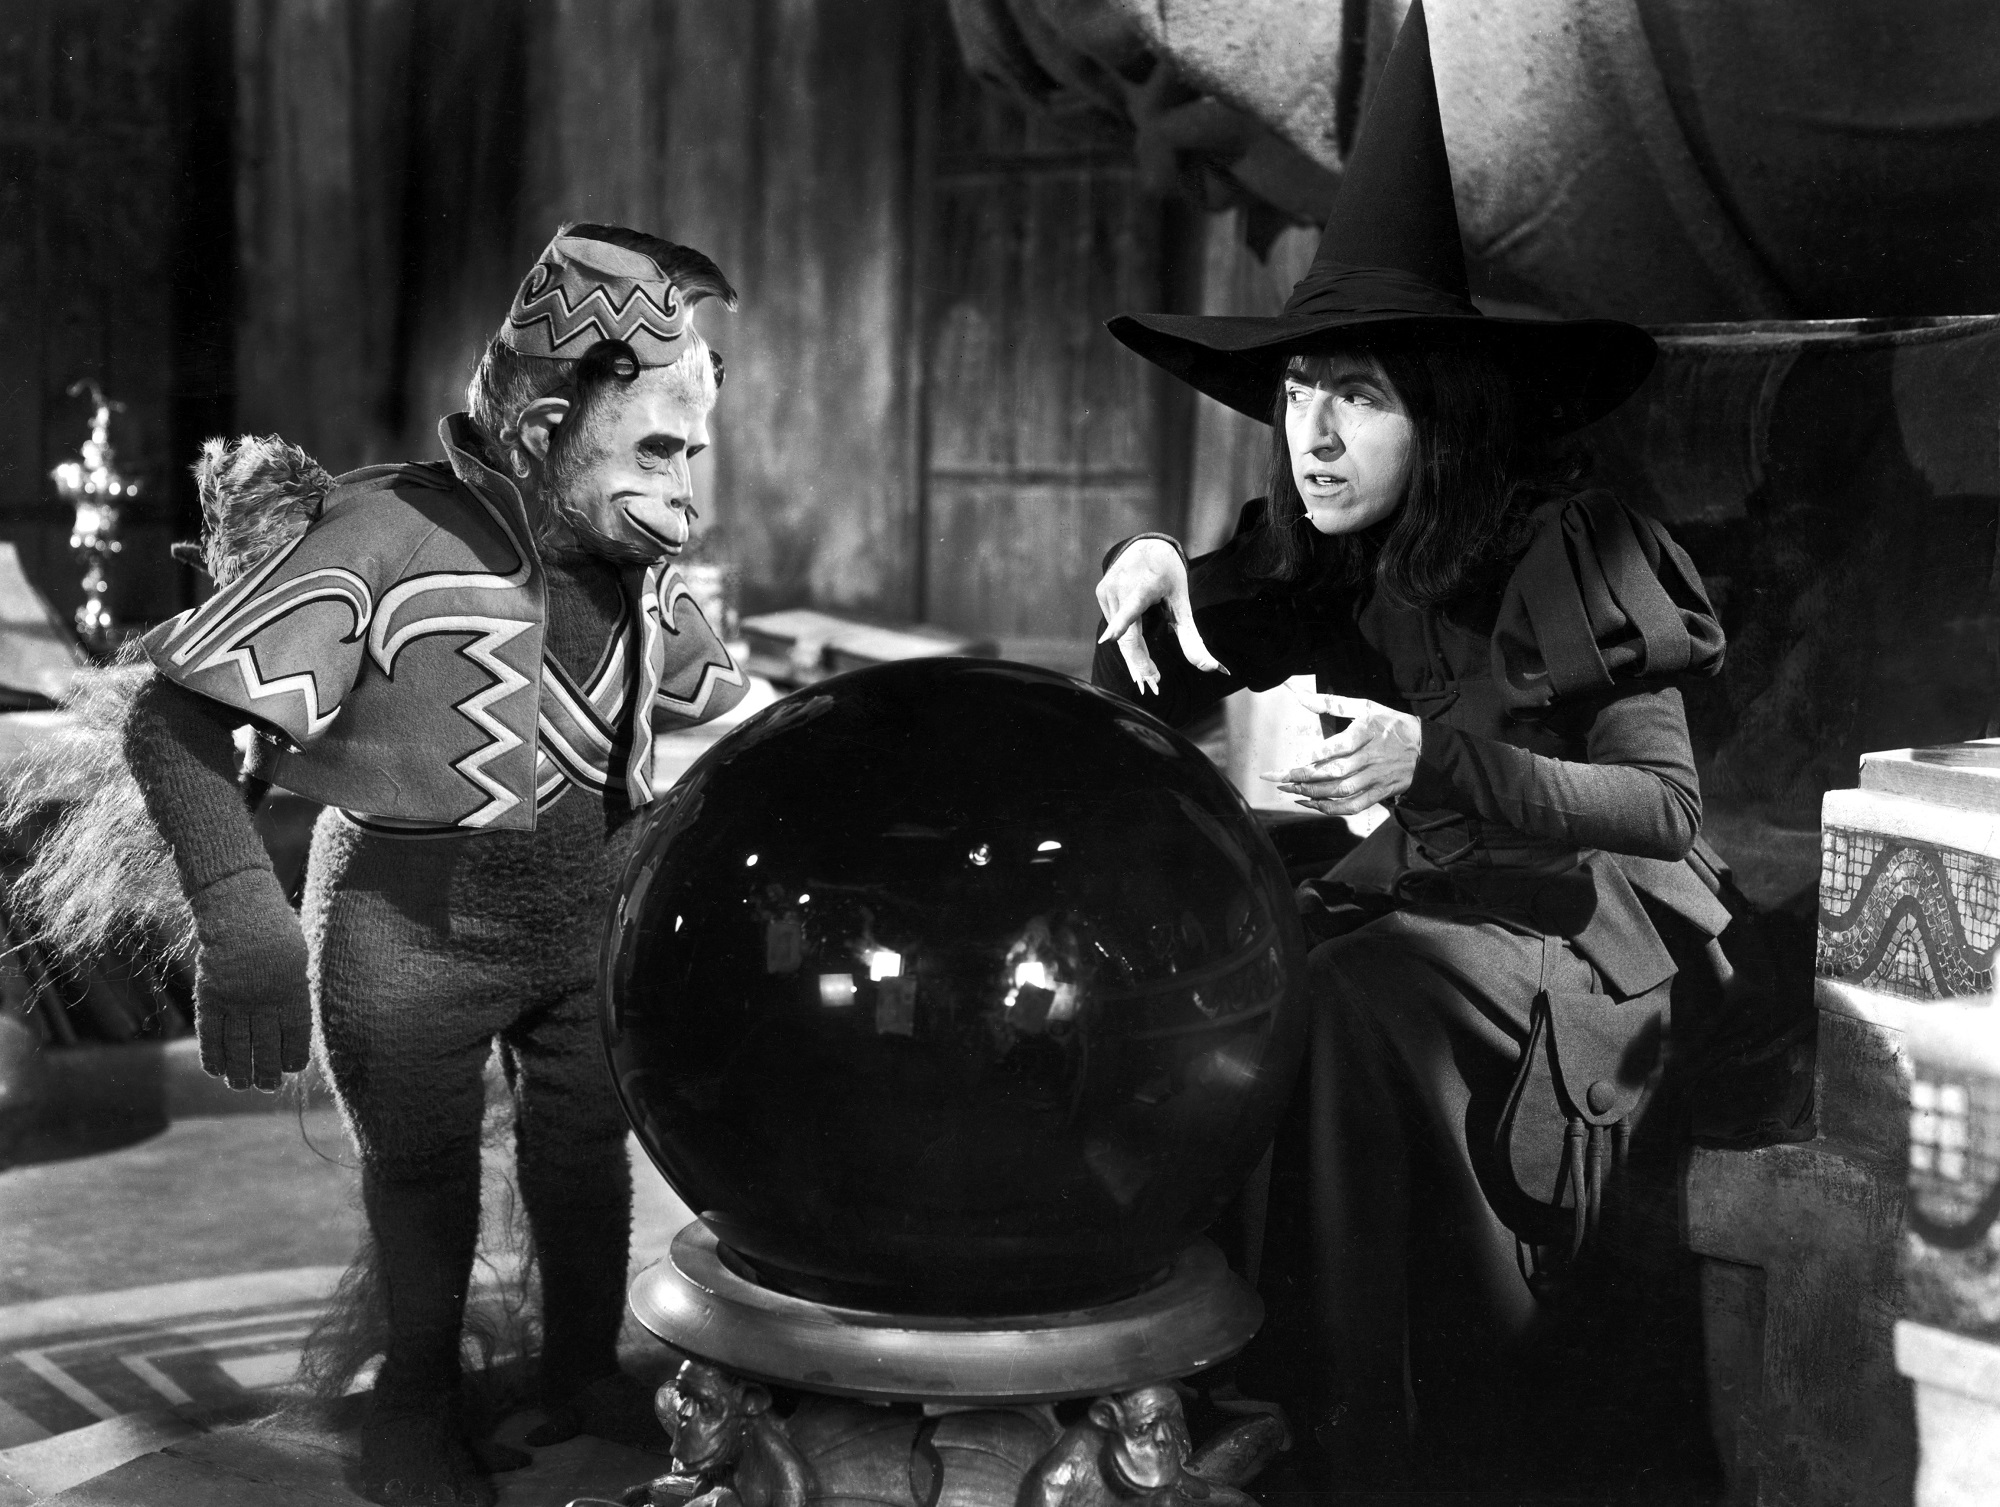 American actor Margaret Hamilton (1902 - 1985) and a winged monkey look into a crystal ball in a still from the film, The Wizard of Oz, directed by Victor Fleming, 1939